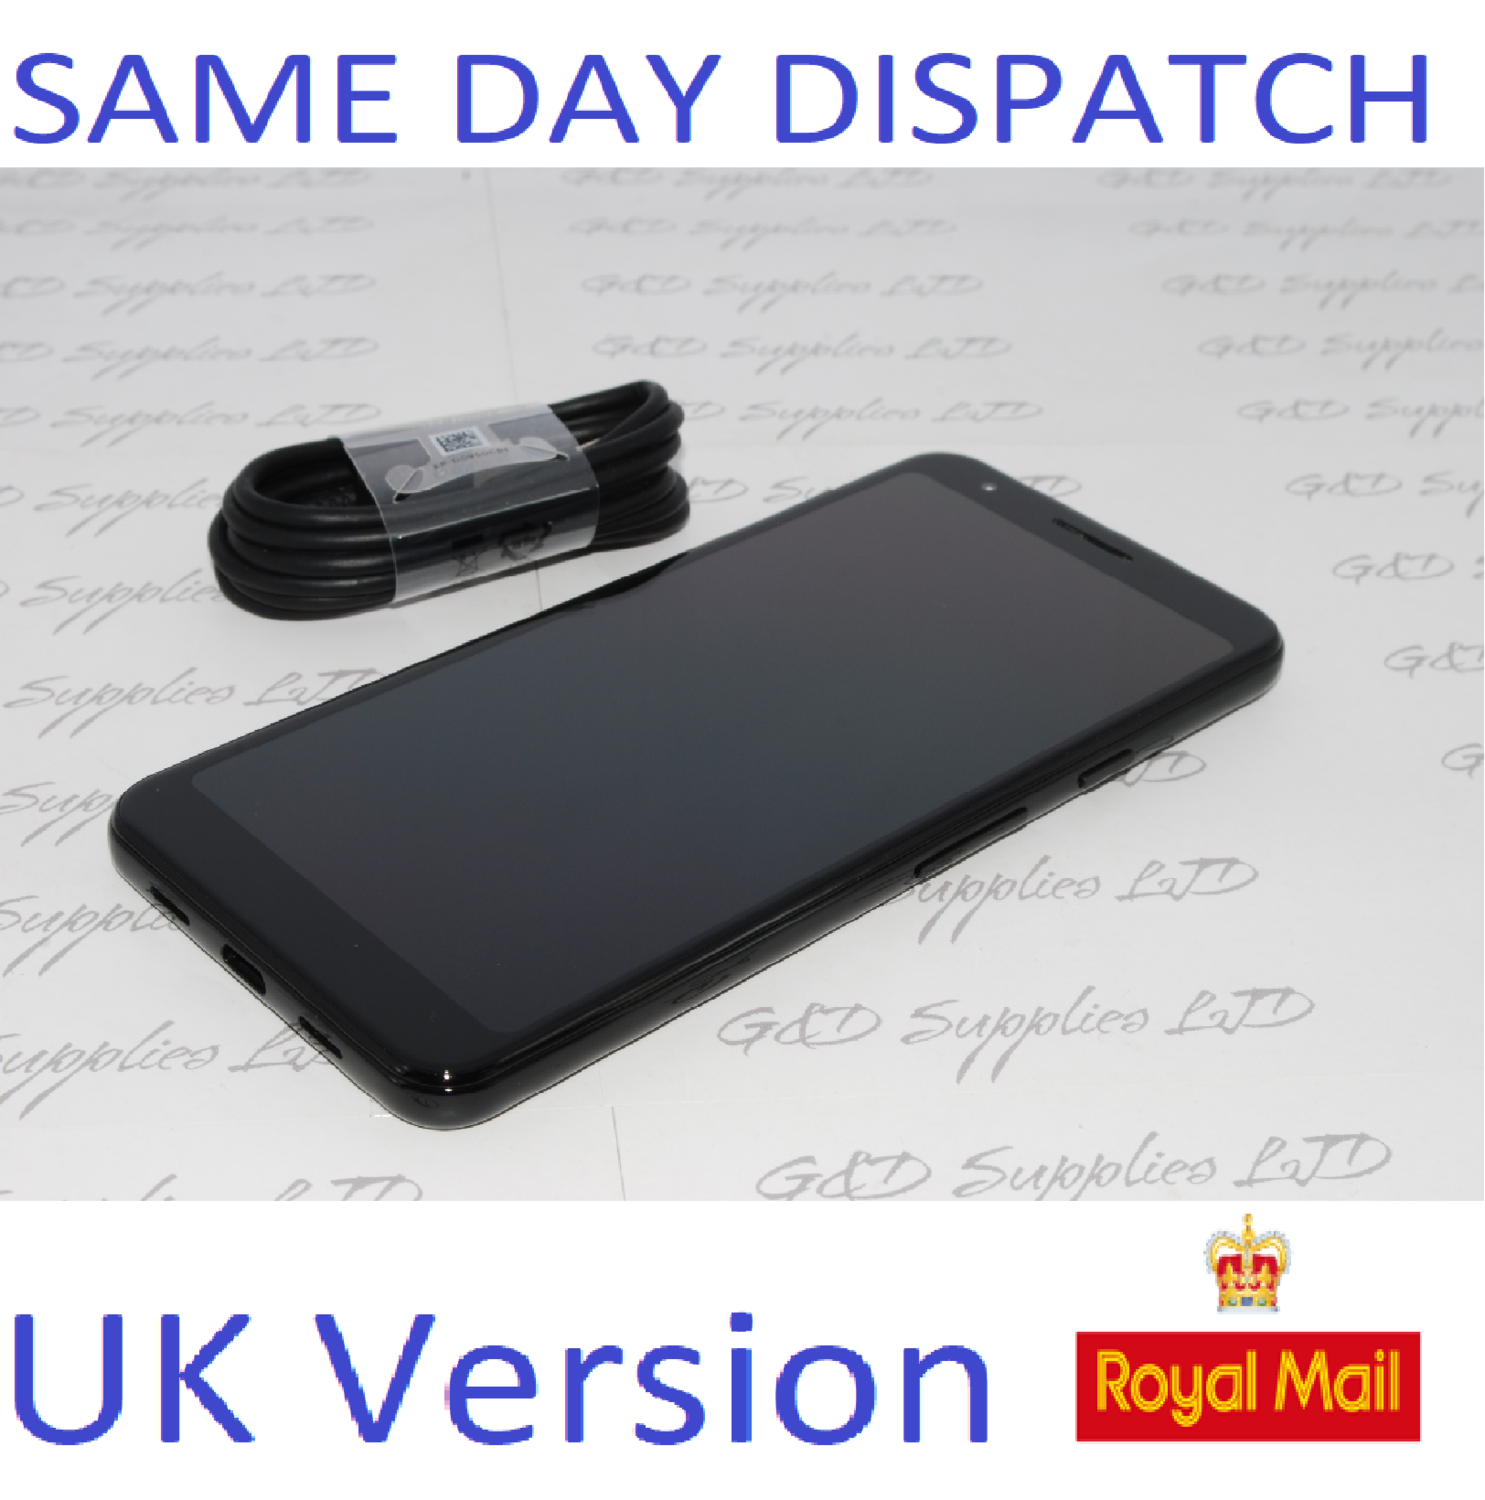 Google Pixel 3a 5.56 Inch 64GB 4GB Android Mobile Unlocked Phone - Black  UK version NO BOX